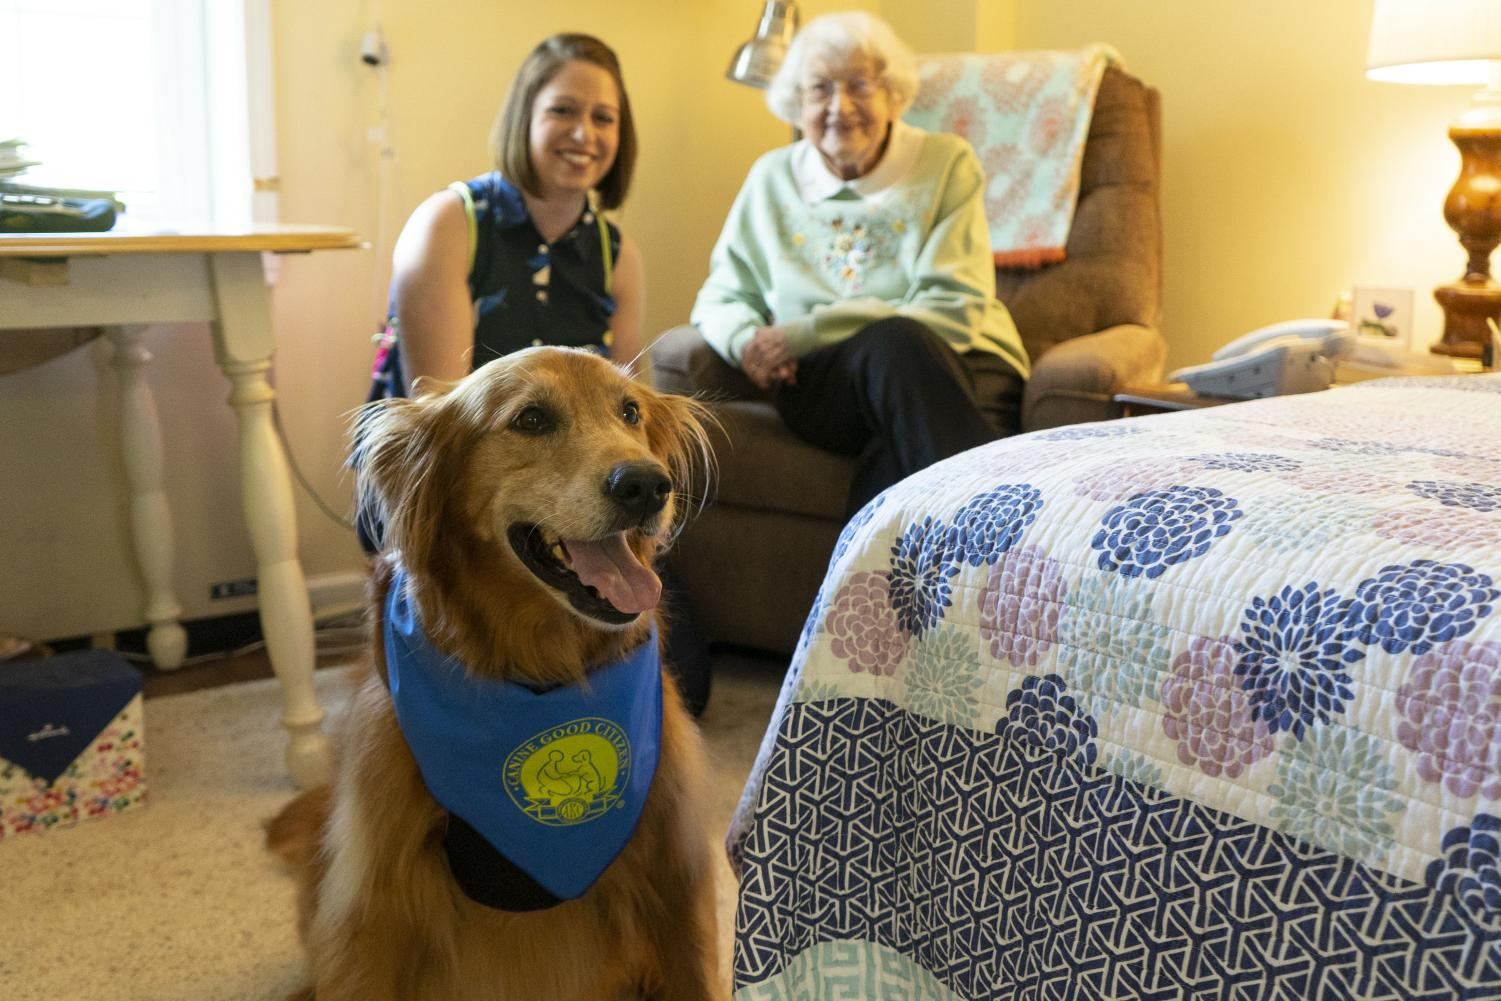 Maggie the Therapy Dog looks for a treat while visiting Helen Purcell. Her owner, Lisa Marshall, and resident Henrietta Hurst watch in the background.